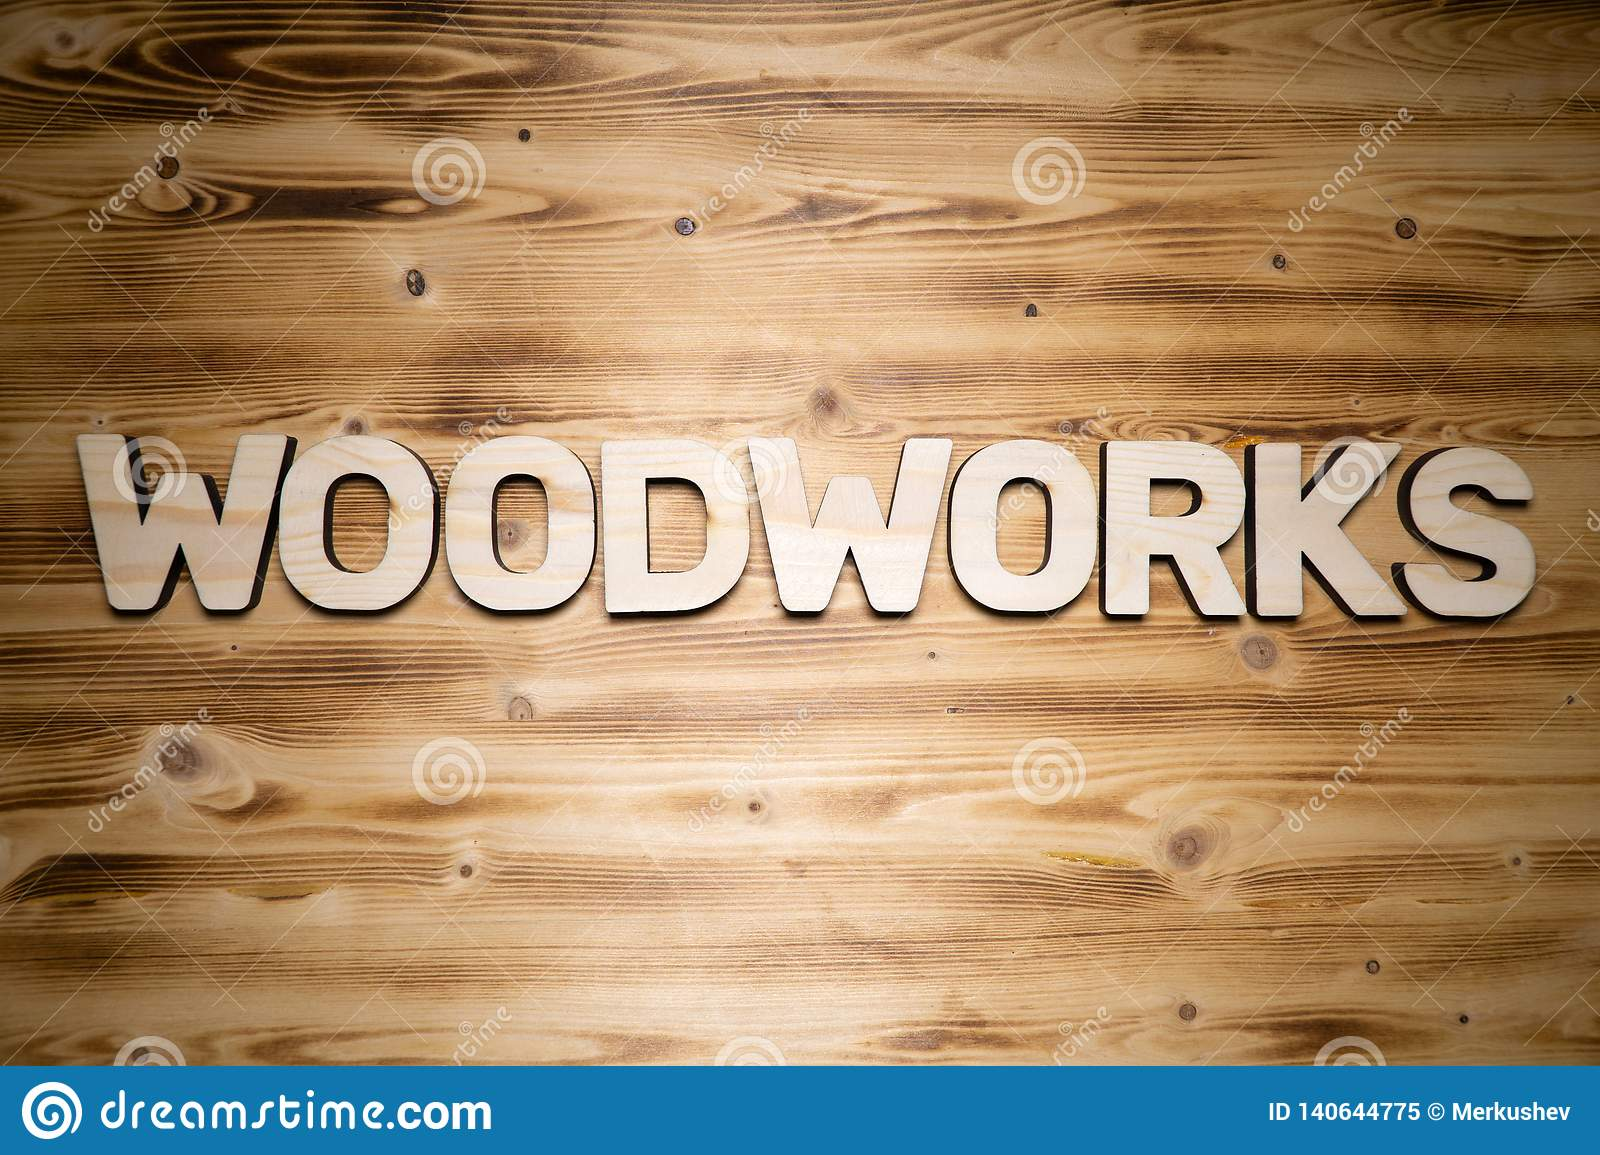 WOODWORKS word made of wooden block letters on wooden board